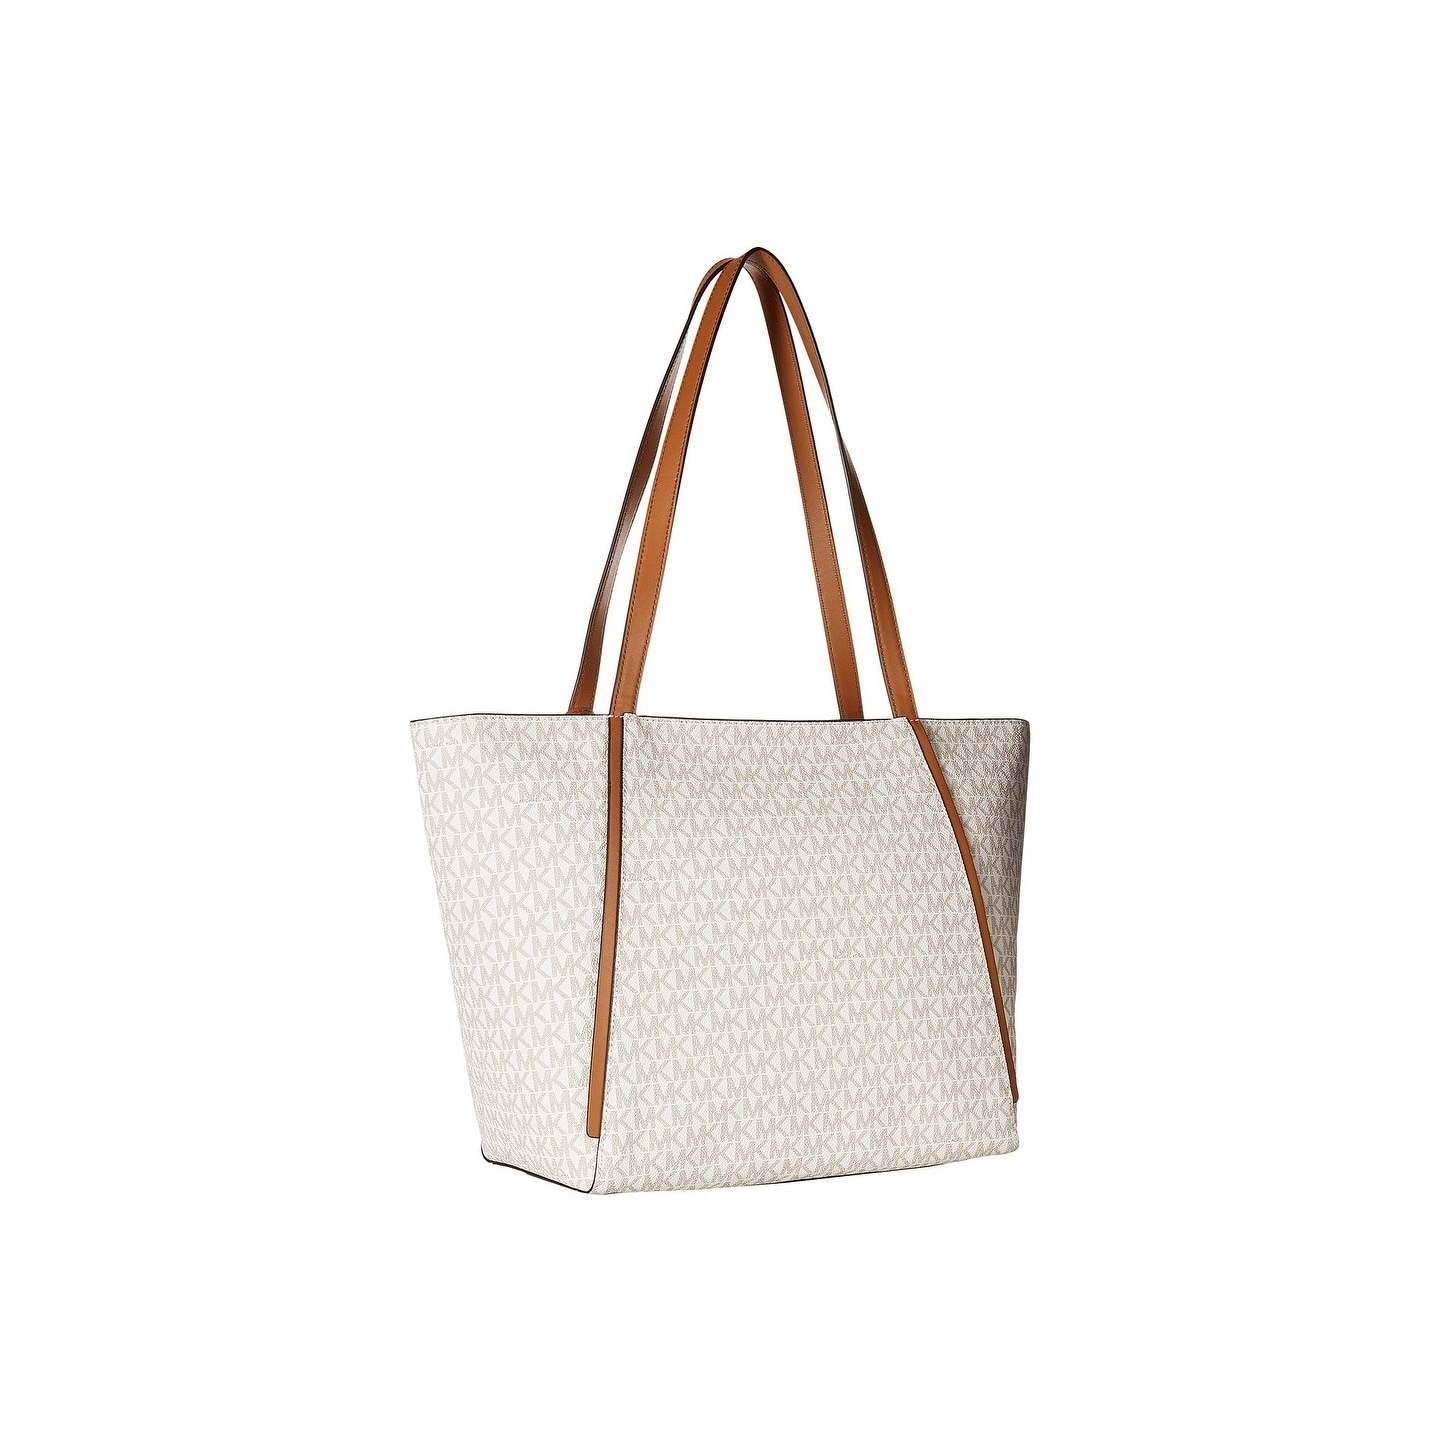 a03719cc35c4 Shop MICHAEL Michael Kors Signature Whitney Large Tote - On Sale - Free  Shipping Today - Overstock - 22101064